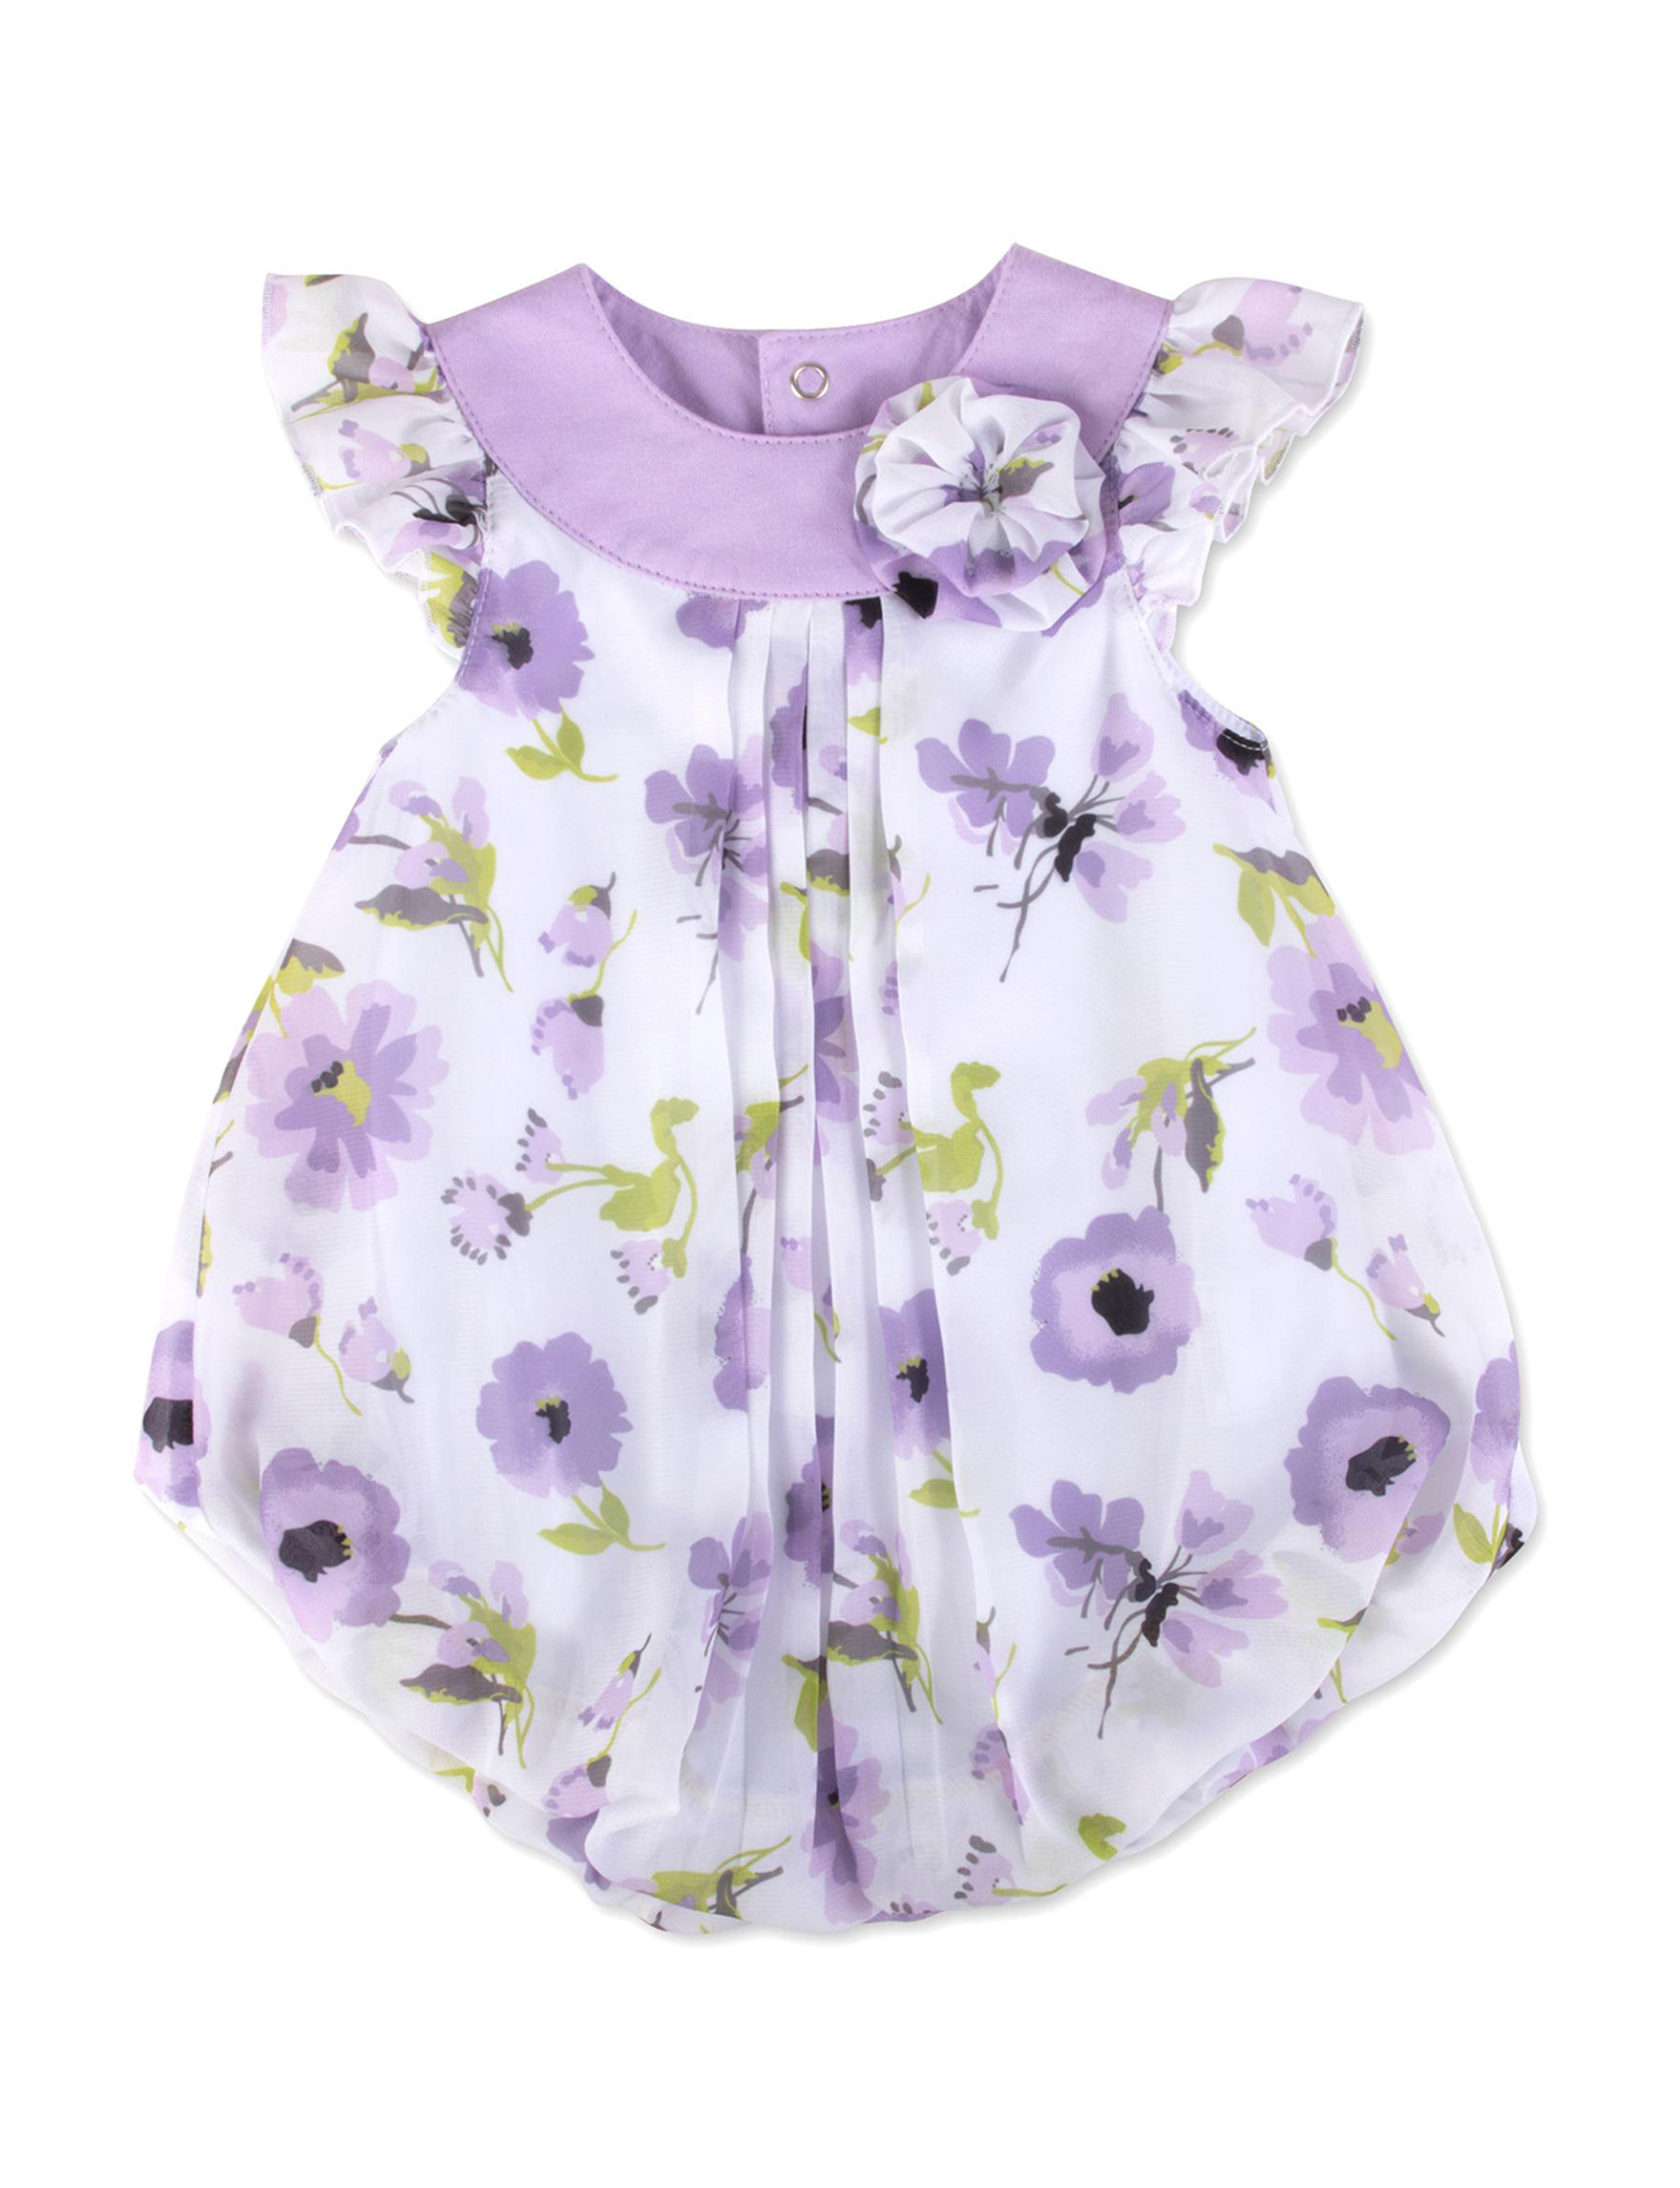 Baby Essentials Purple / White